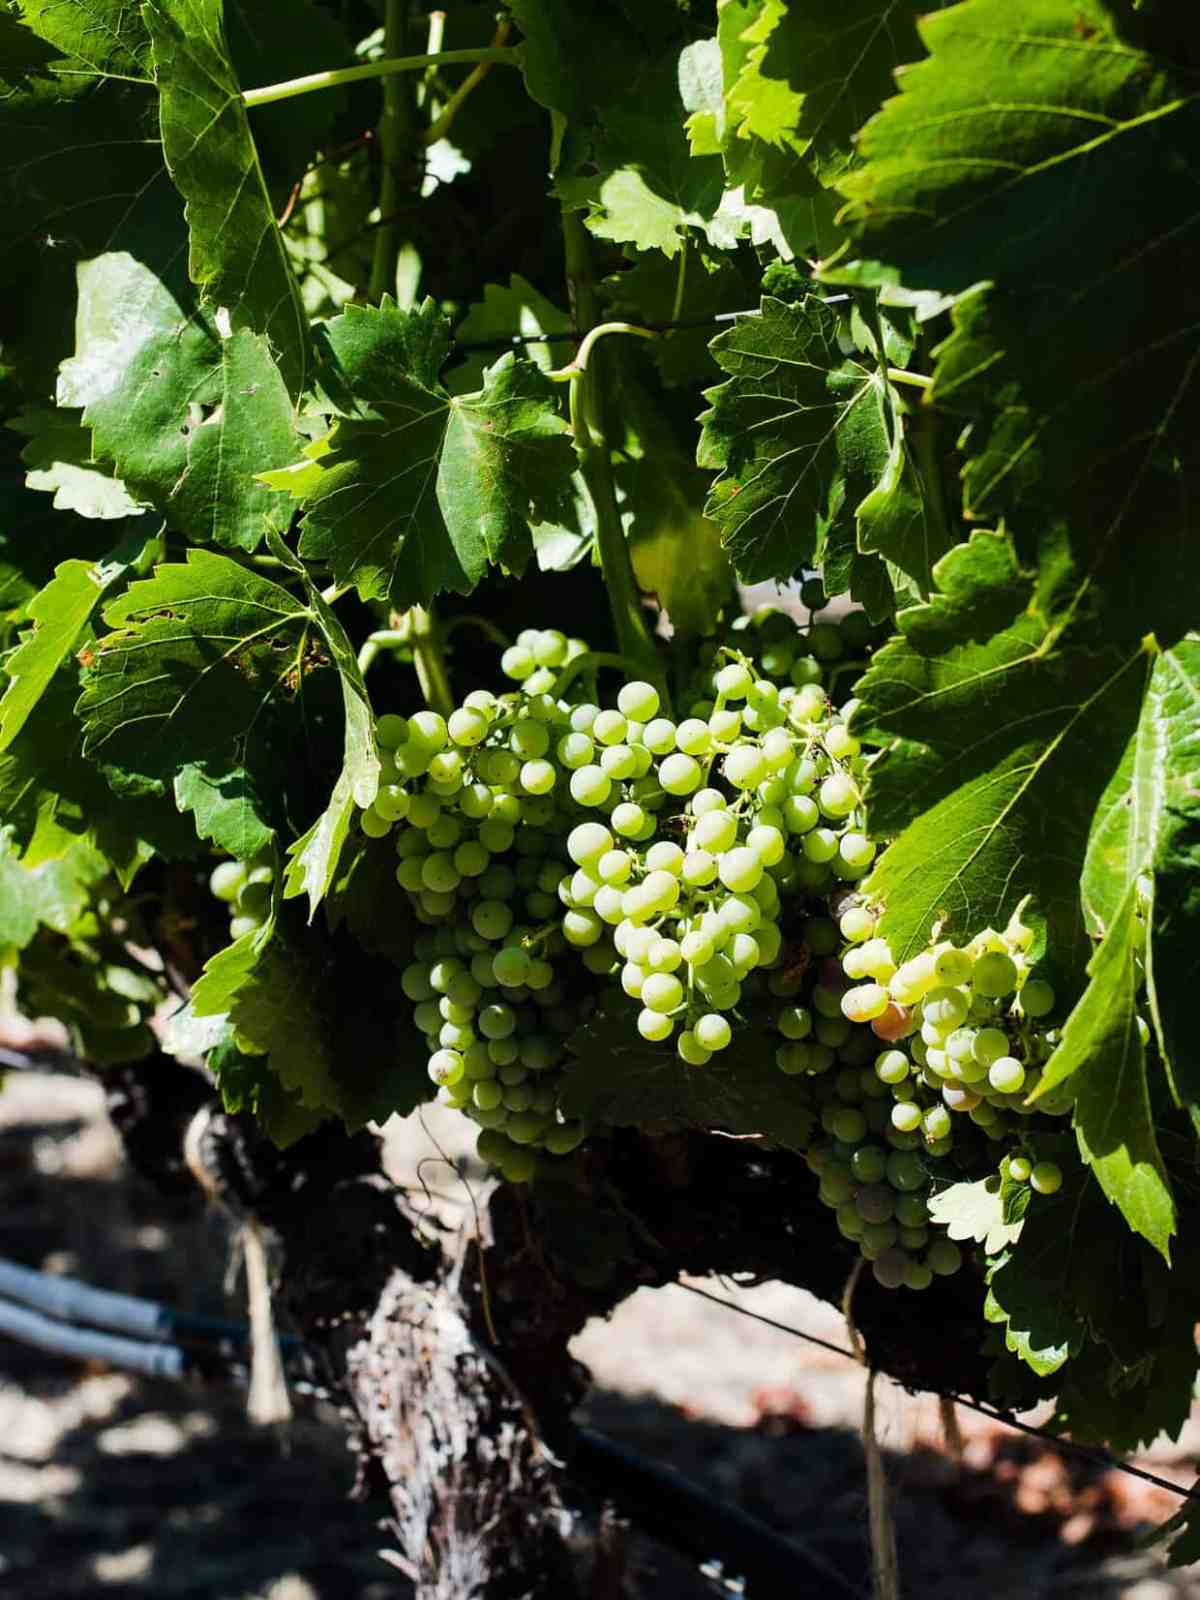 Green grapes growing on the vine at a winery.